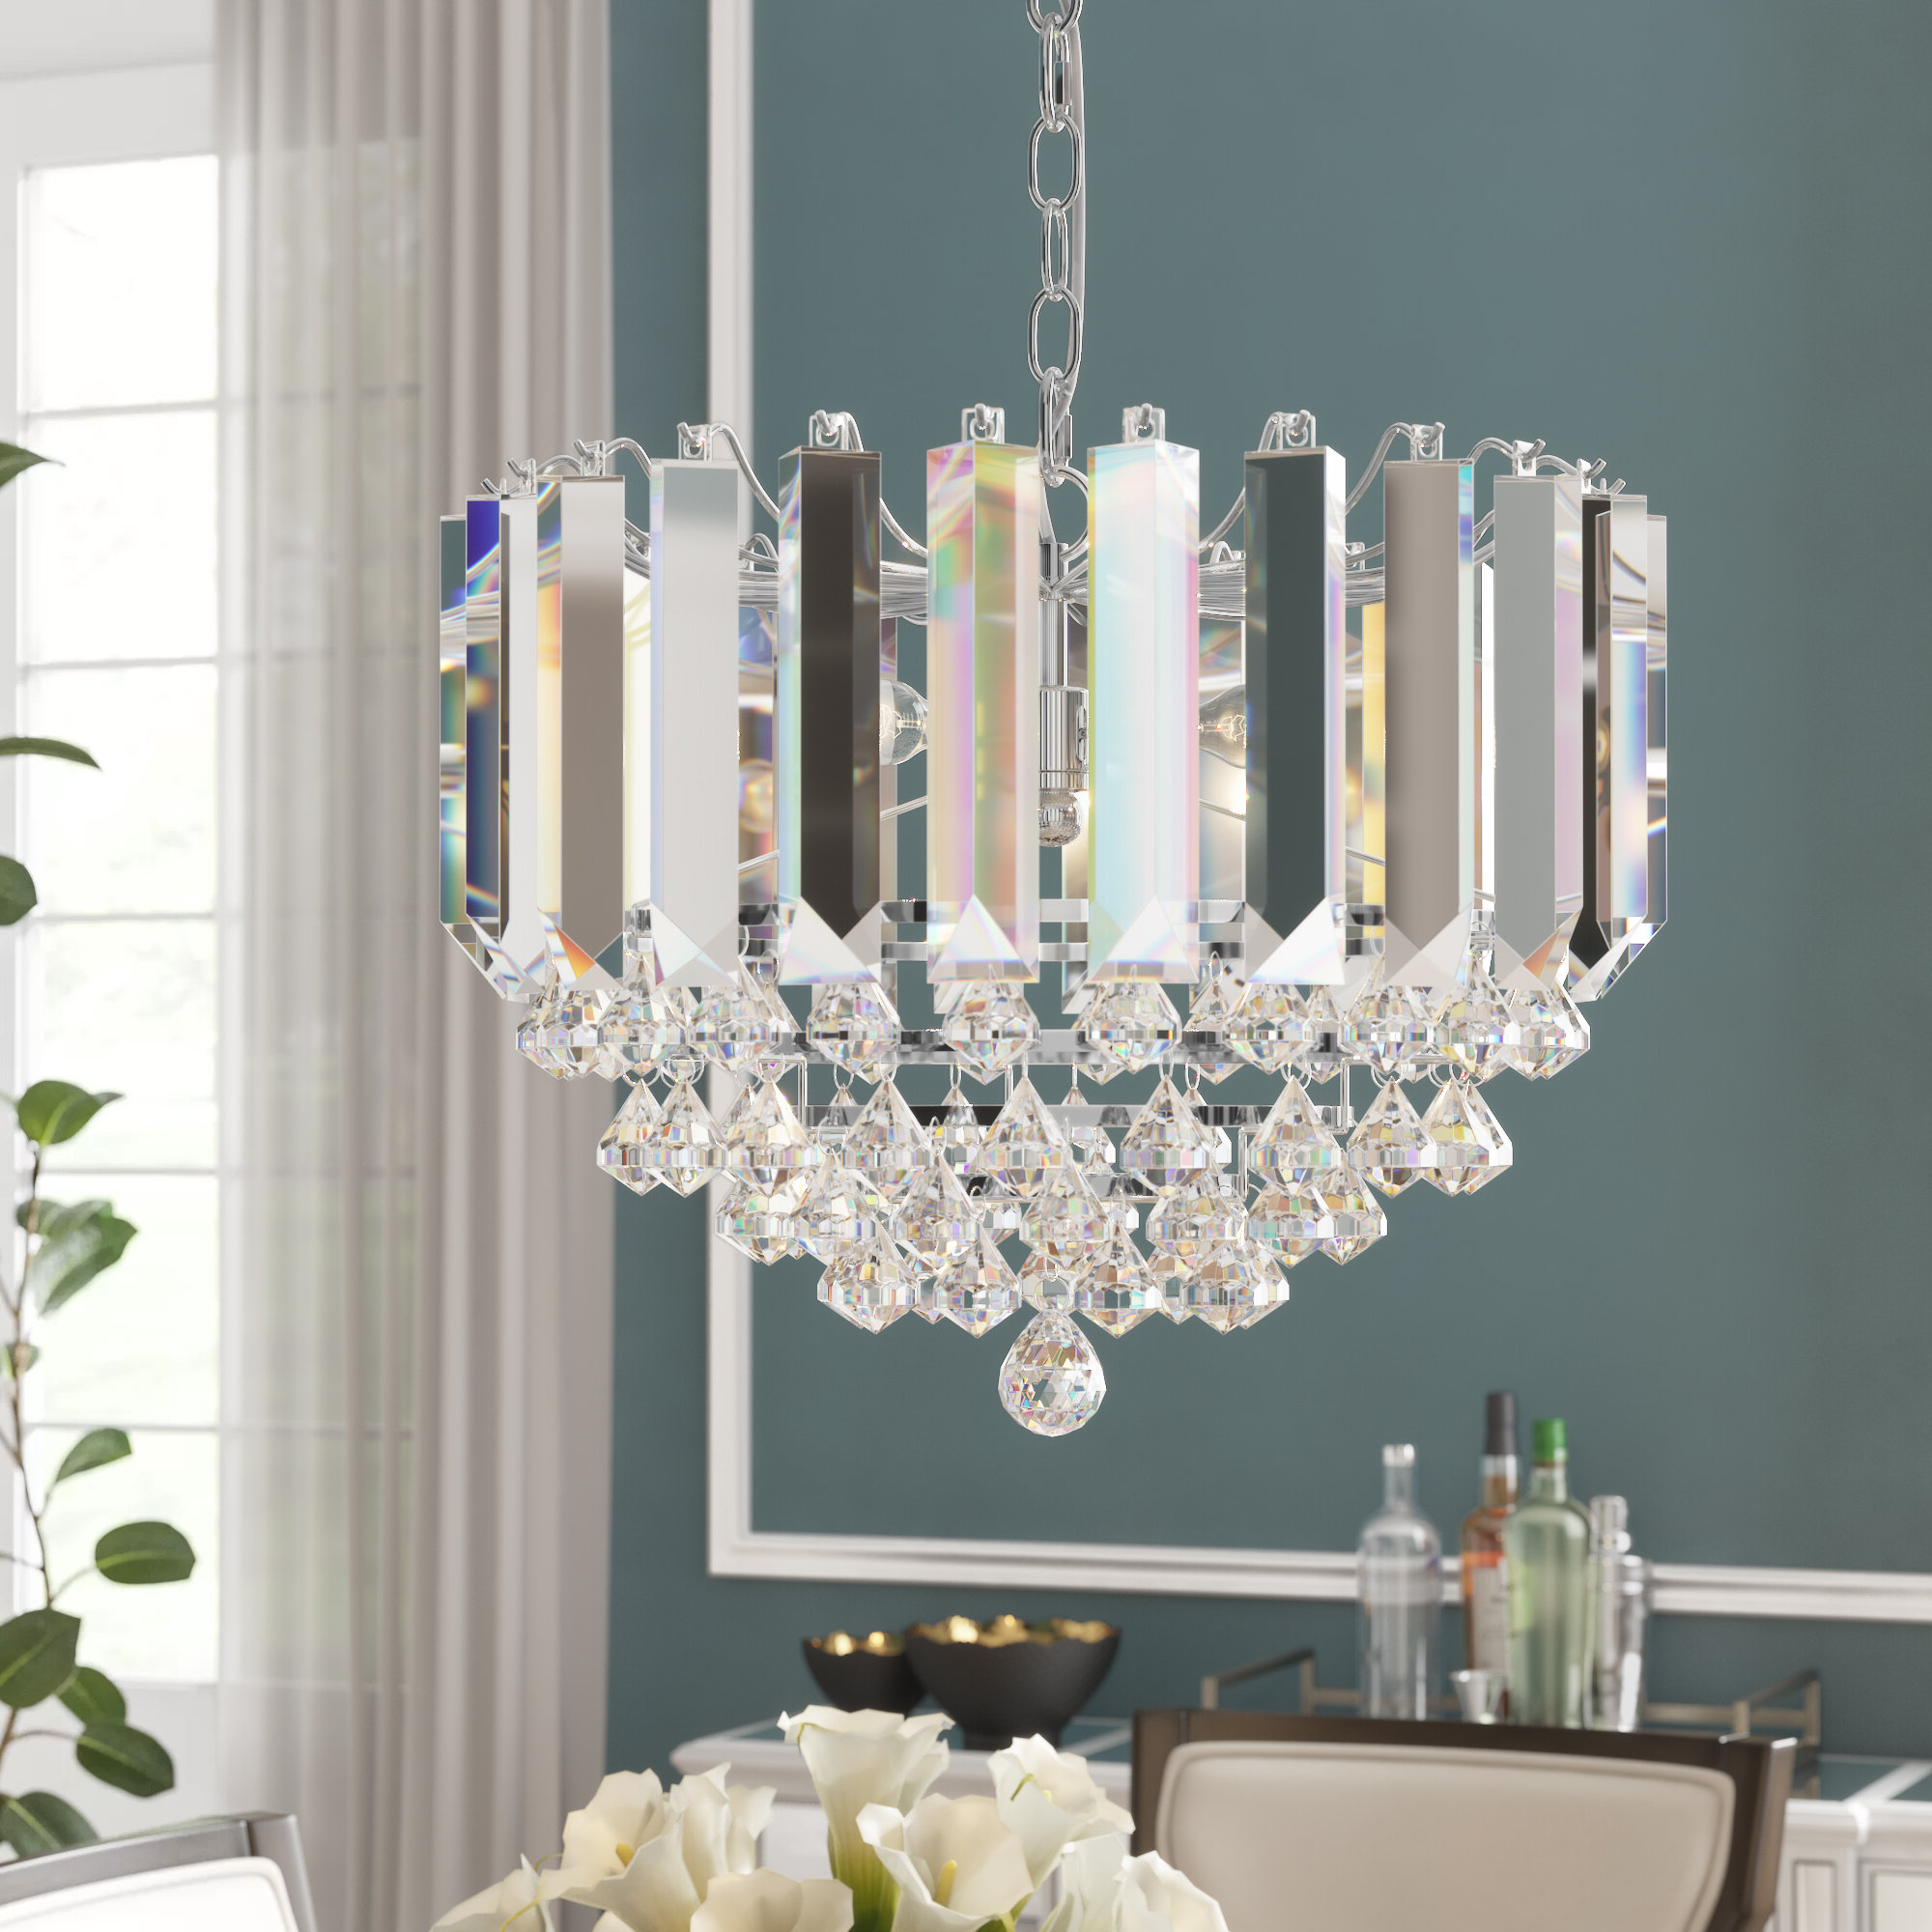 Birchley 2 Light Crystal Chandelier Intended For Favorite Benedetto 5 Light Crystal Chandeliers (View 24 of 25)